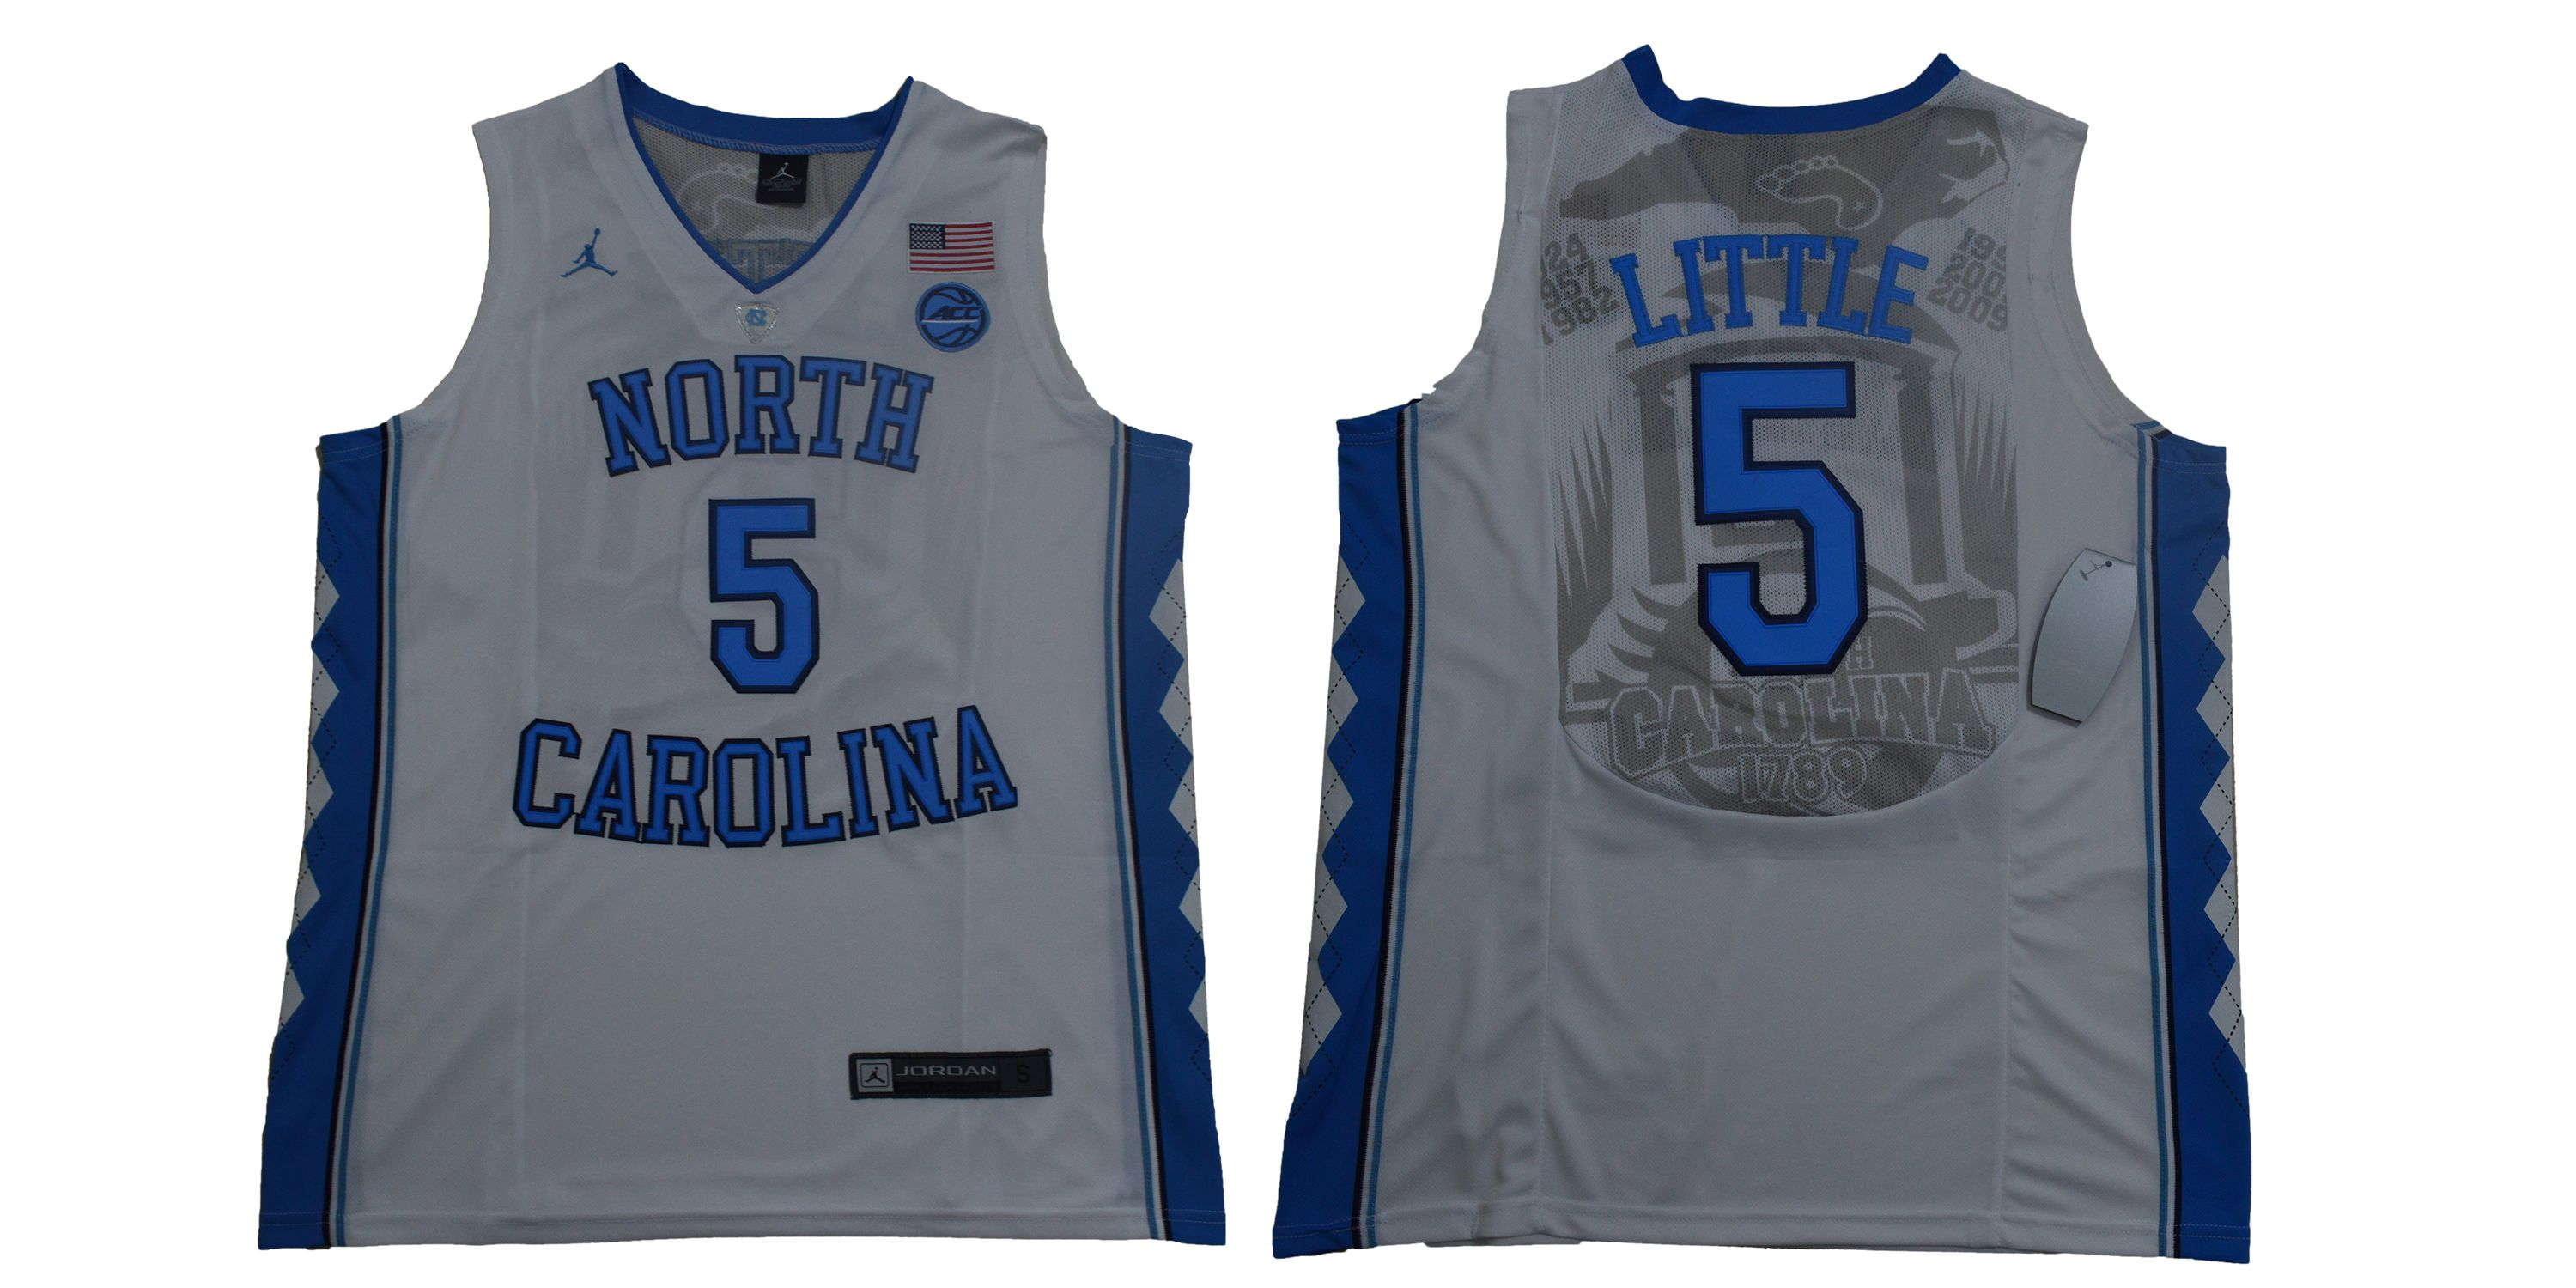 innovative design 5f3dd c3da8 Cheap North Carolina Tar Heels New Jerseys,cheap nfl jerseys ...